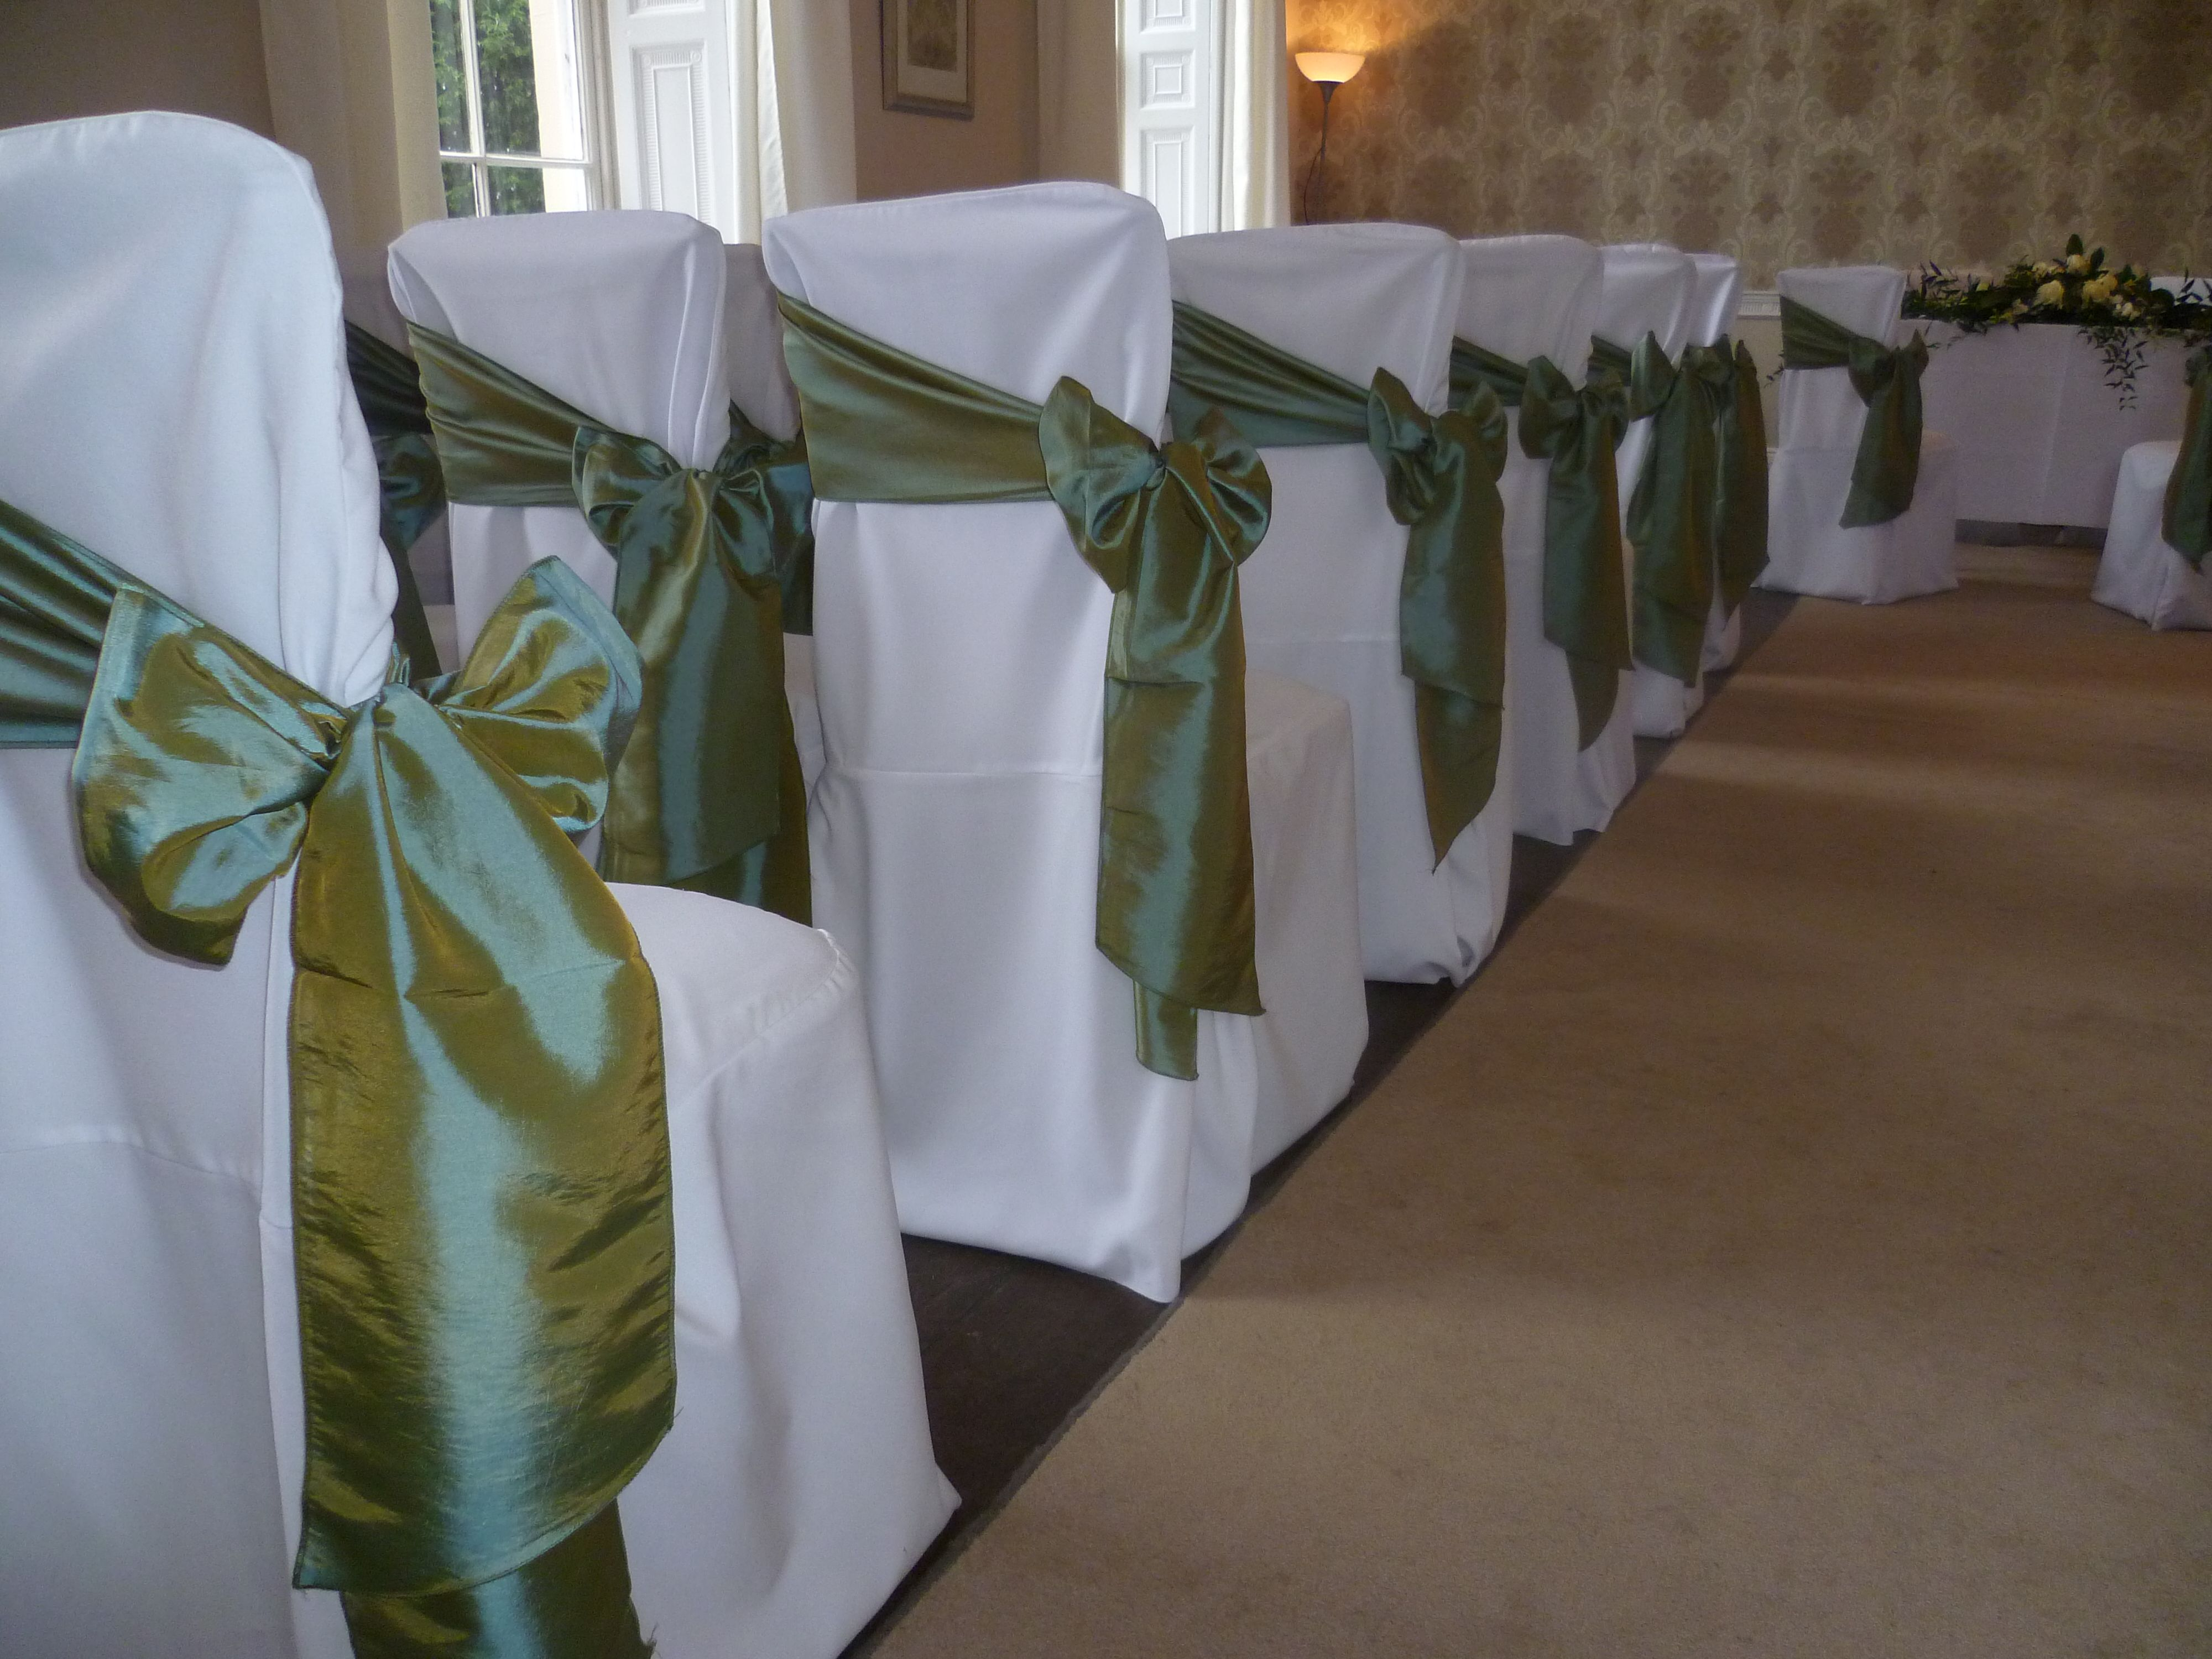 Wedding Venue Styling Chair Cover Hire Ambience Venue Styling Wedding Theme Colors Olive Green Weddings Wedding Chair Decorations